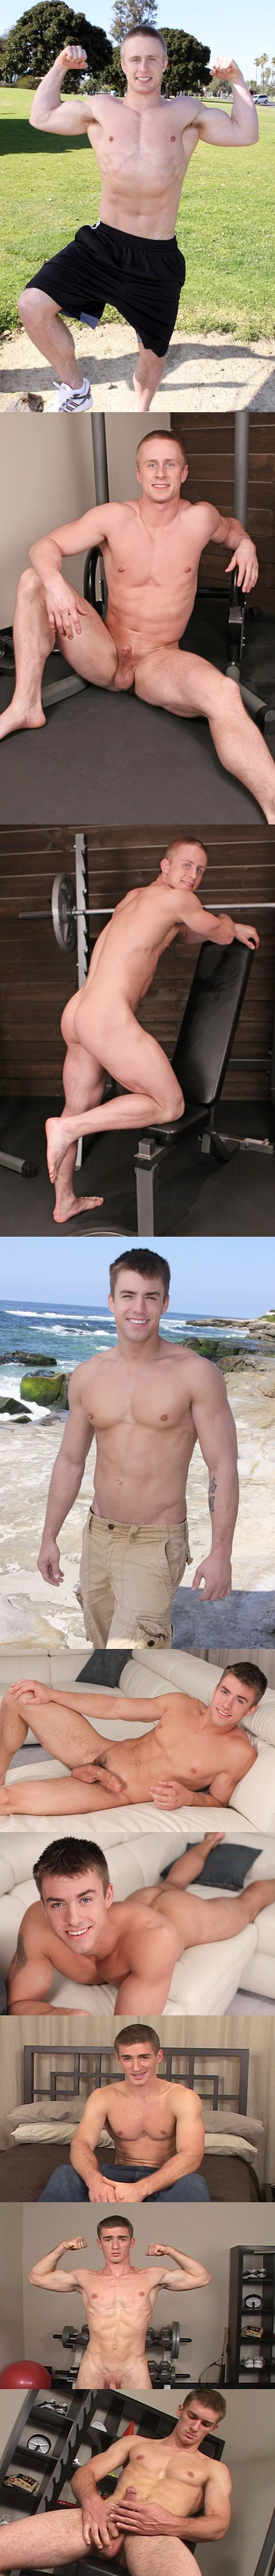 Abe, Marshall or Parker, guess who is back after being away for more than 2 years at Seancody 01